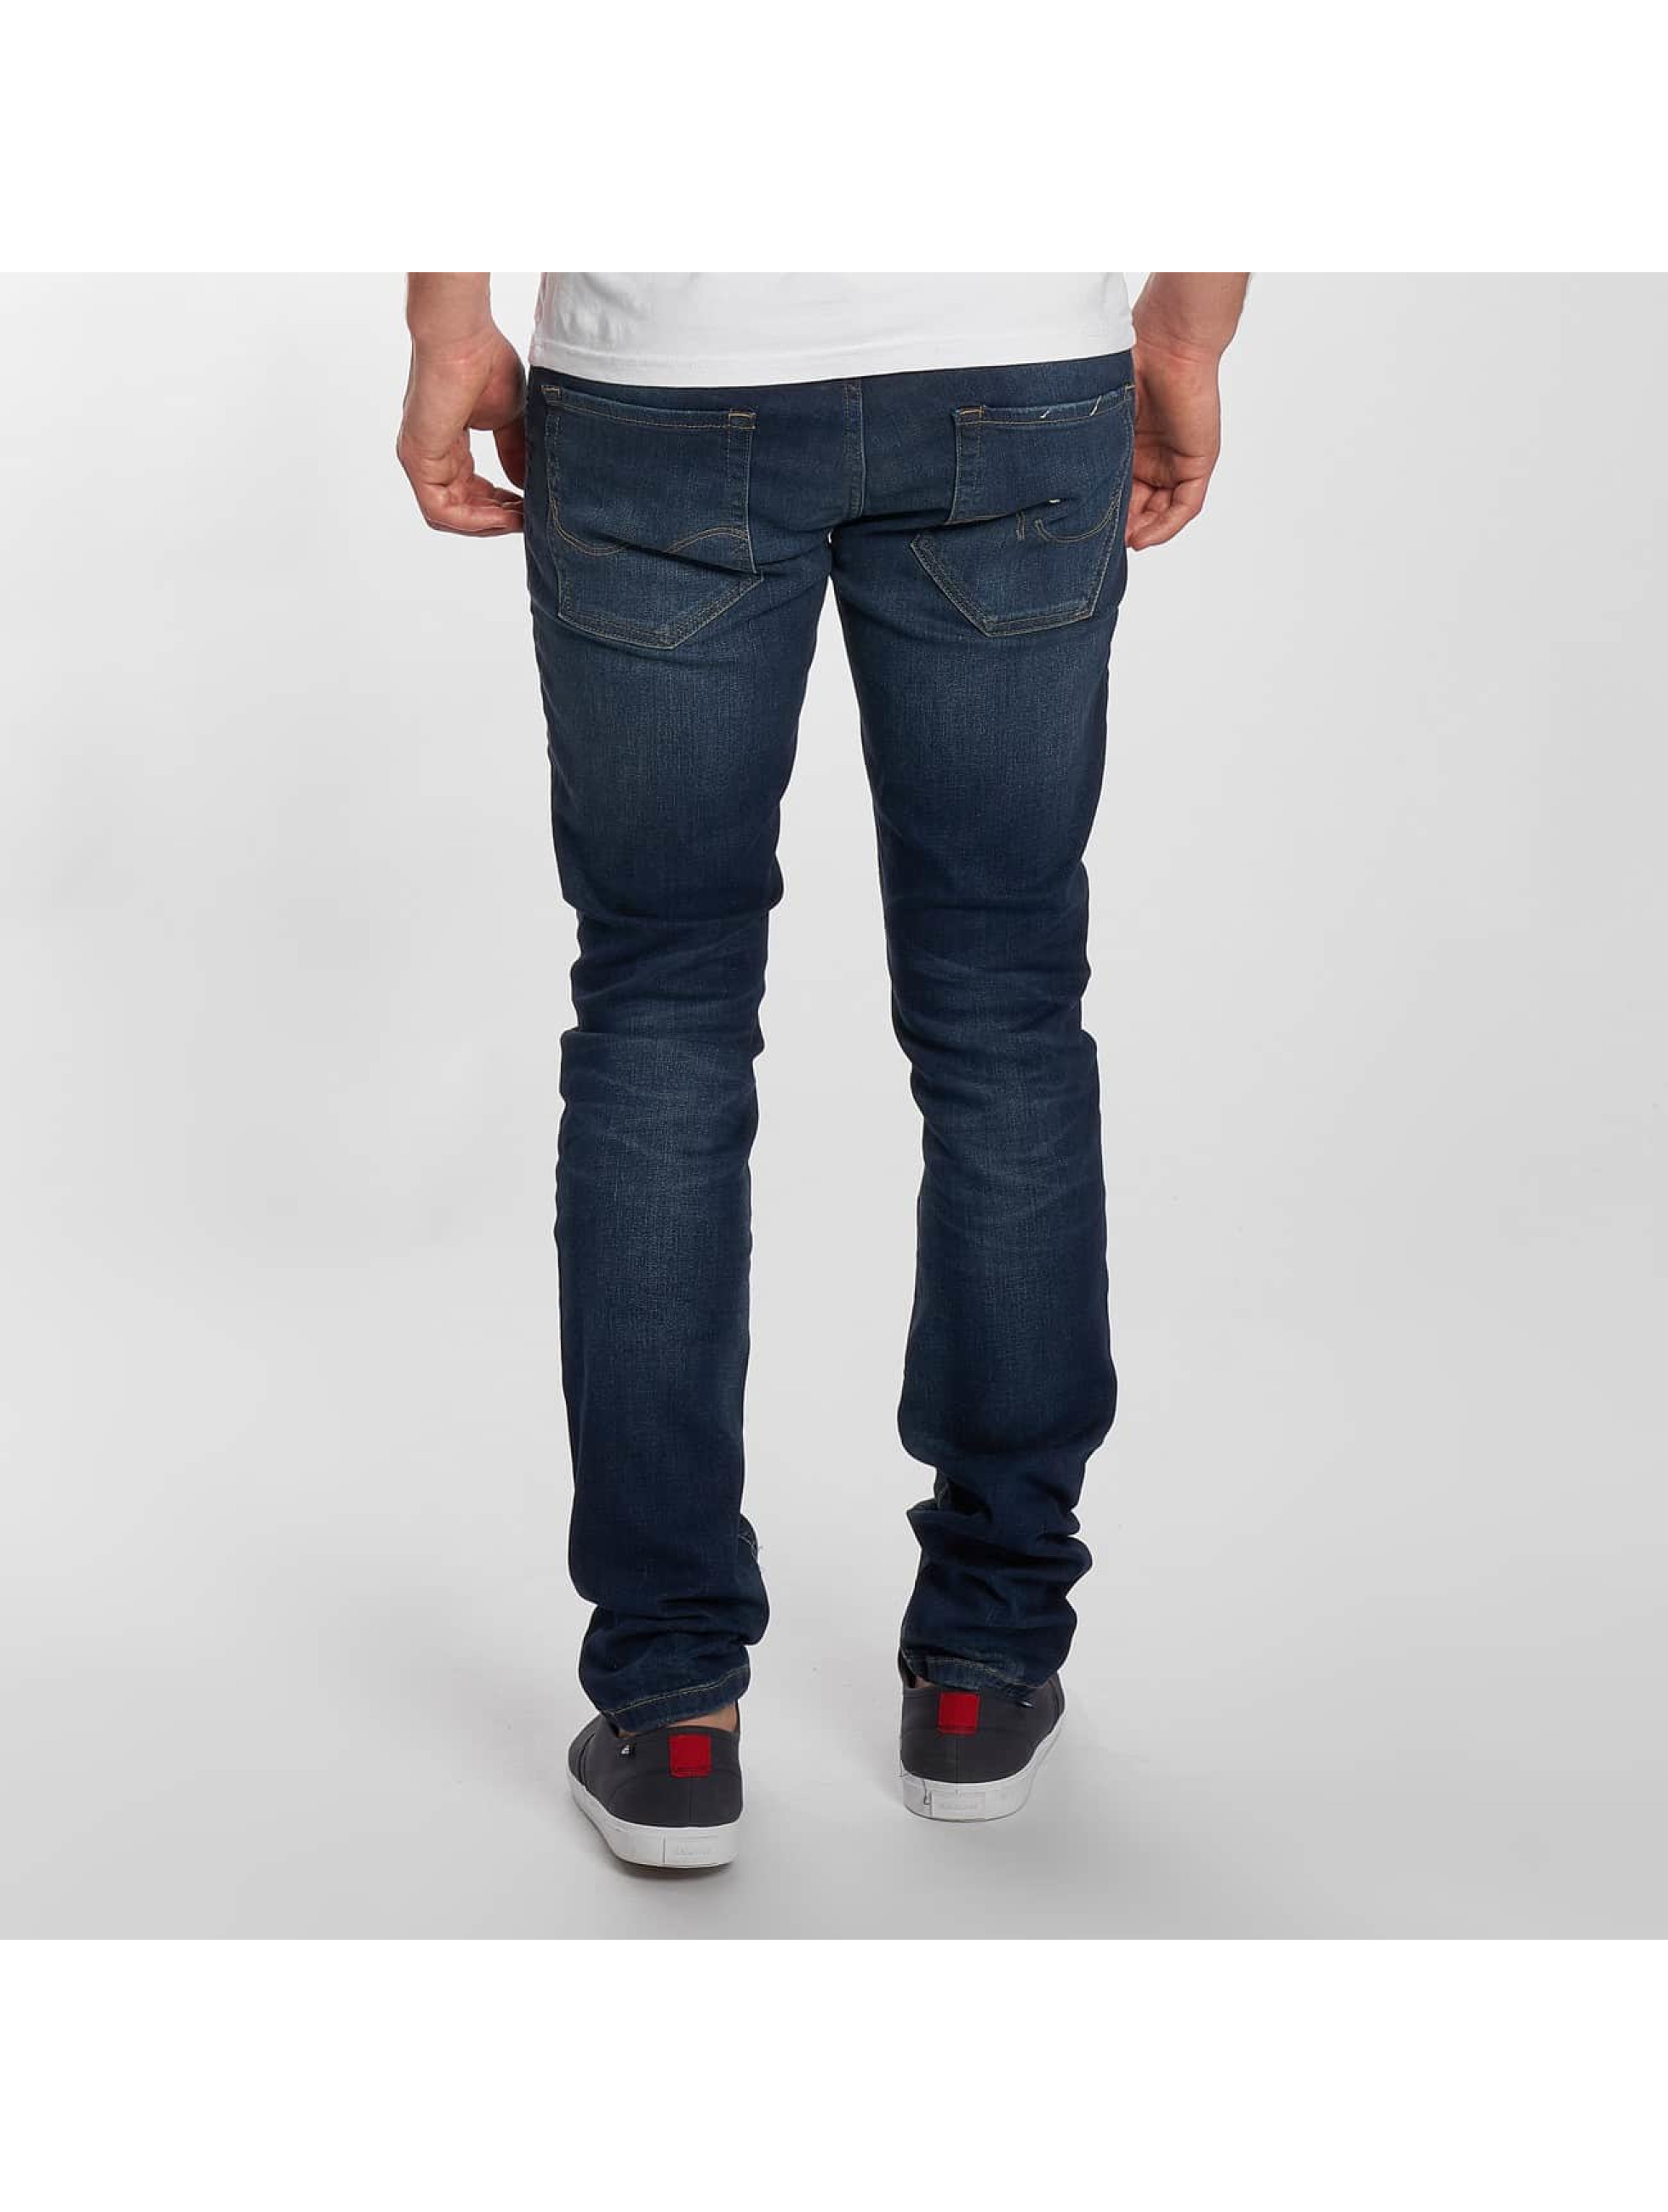 Jack & Jones Slim Fit Jeans jjTIM blue